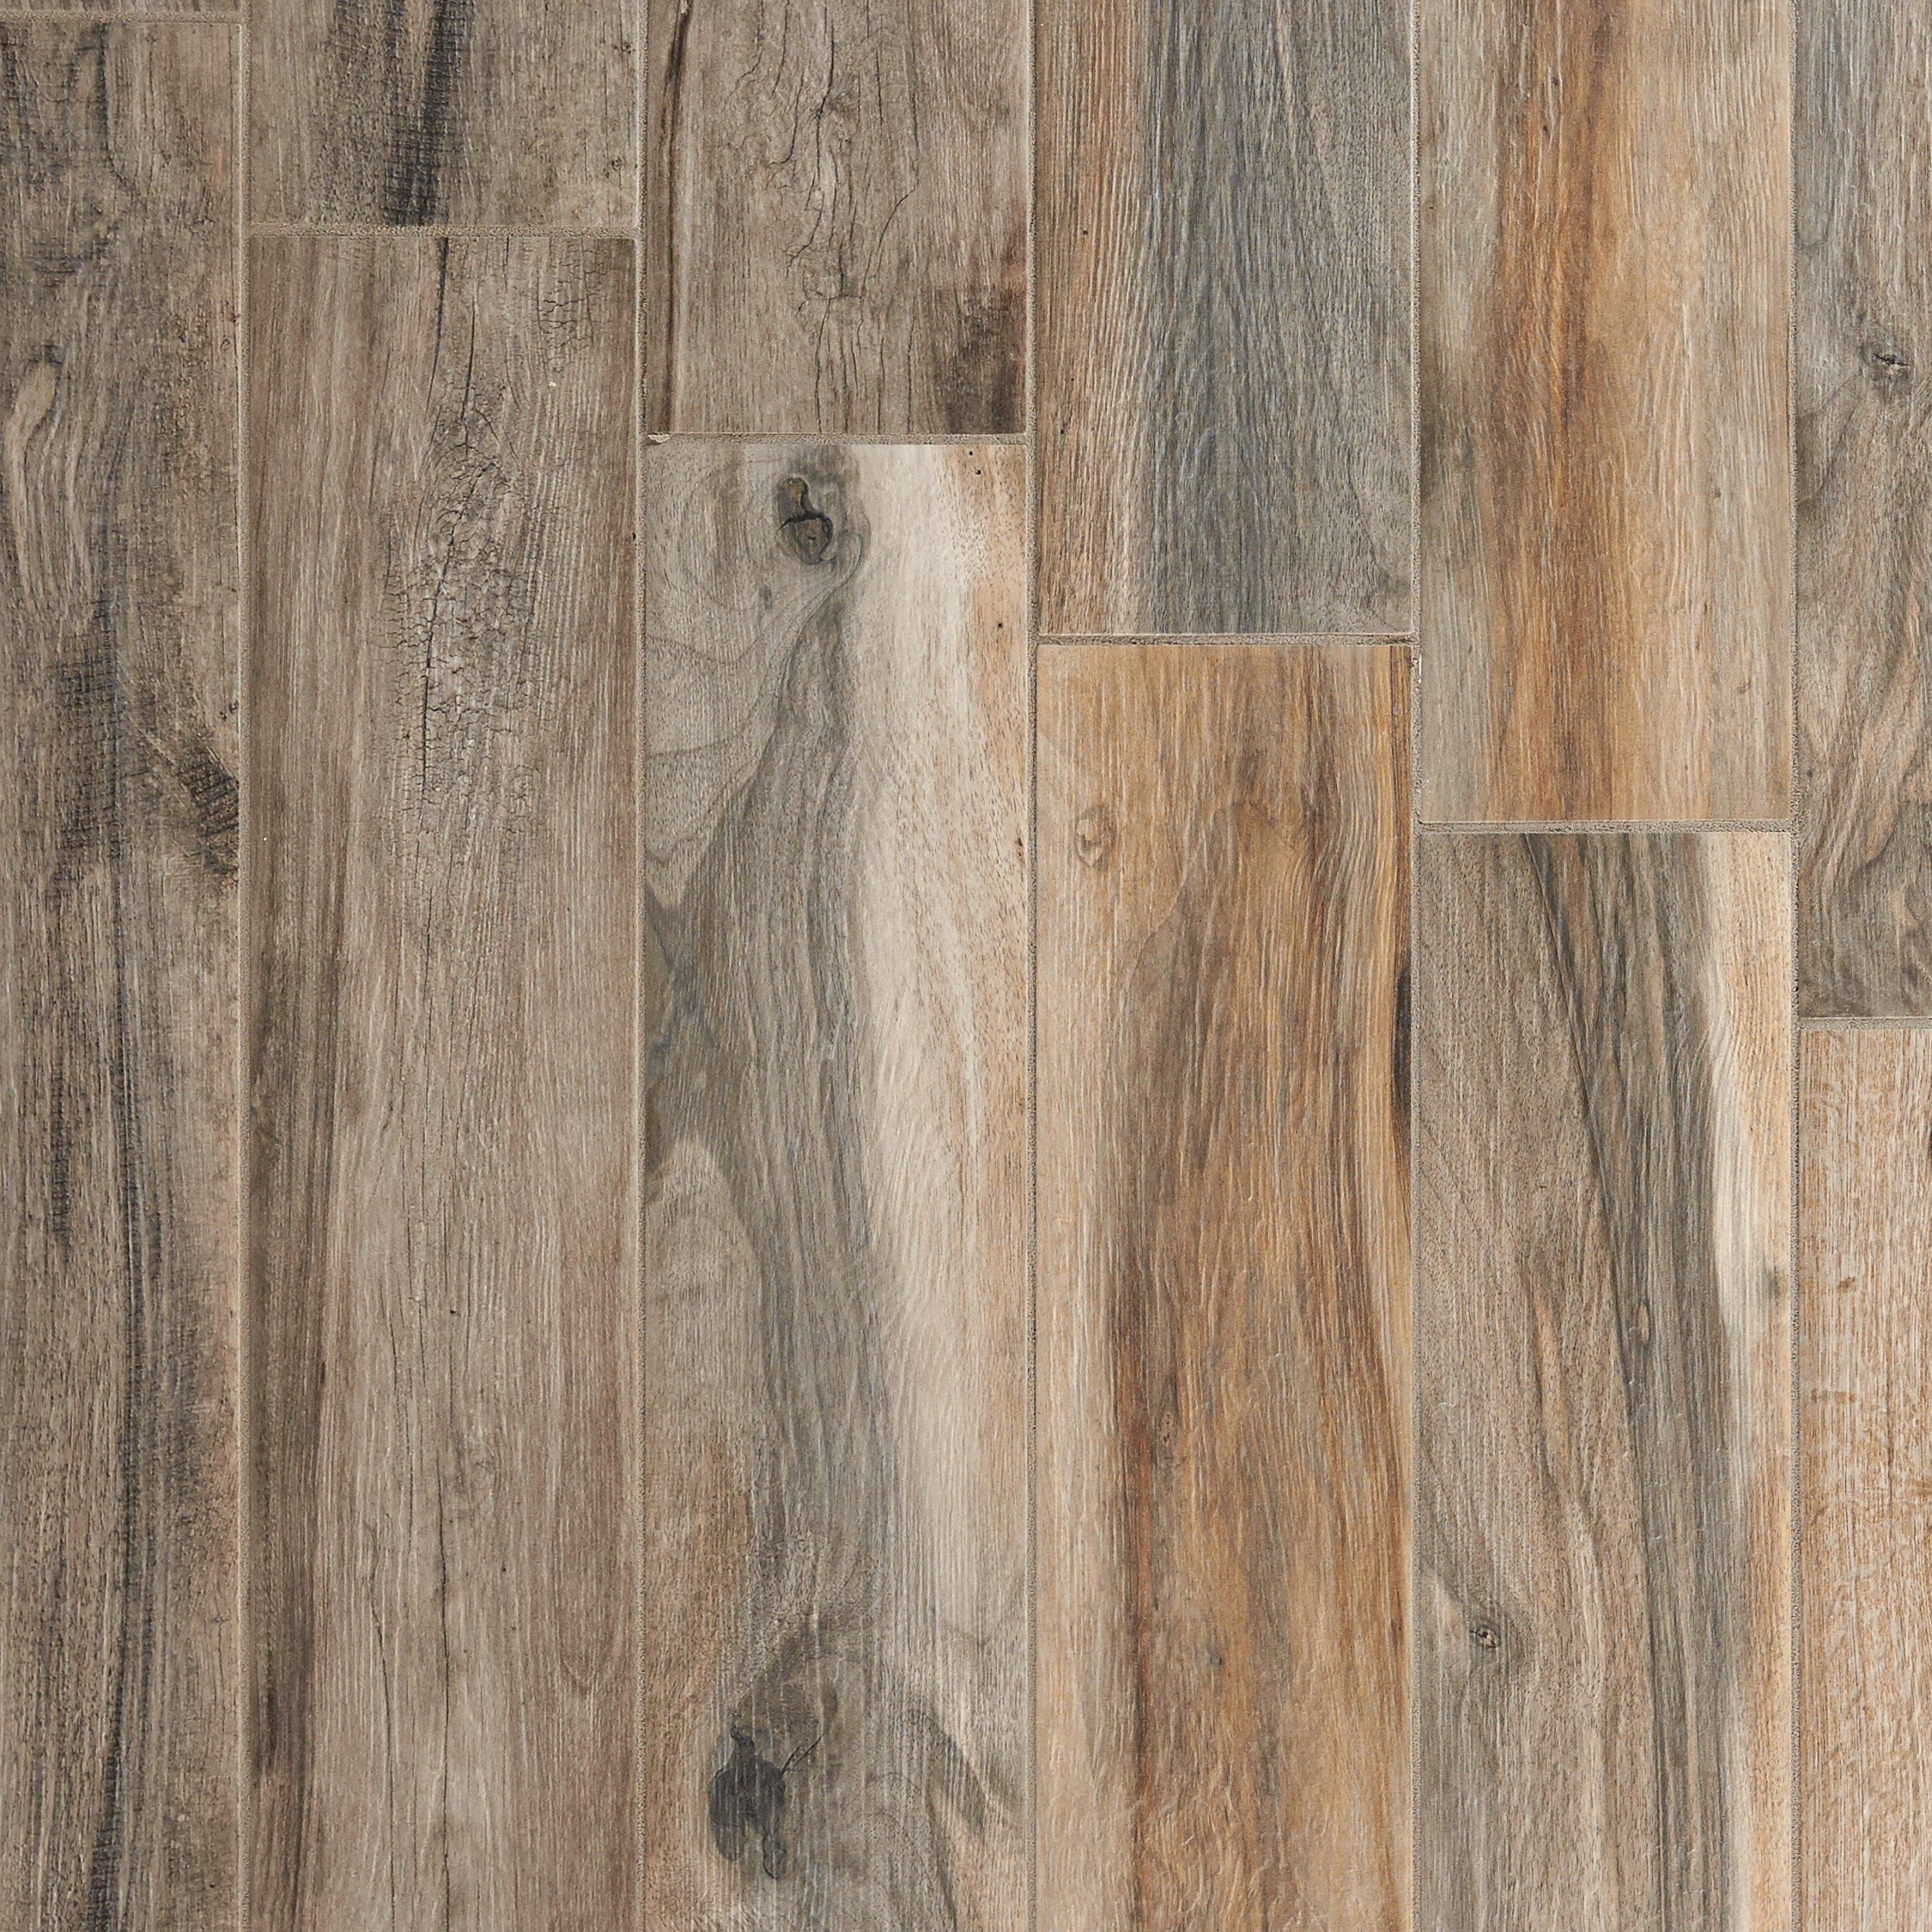 Soft Ash Wood Plank Porcelain Tile In 2019